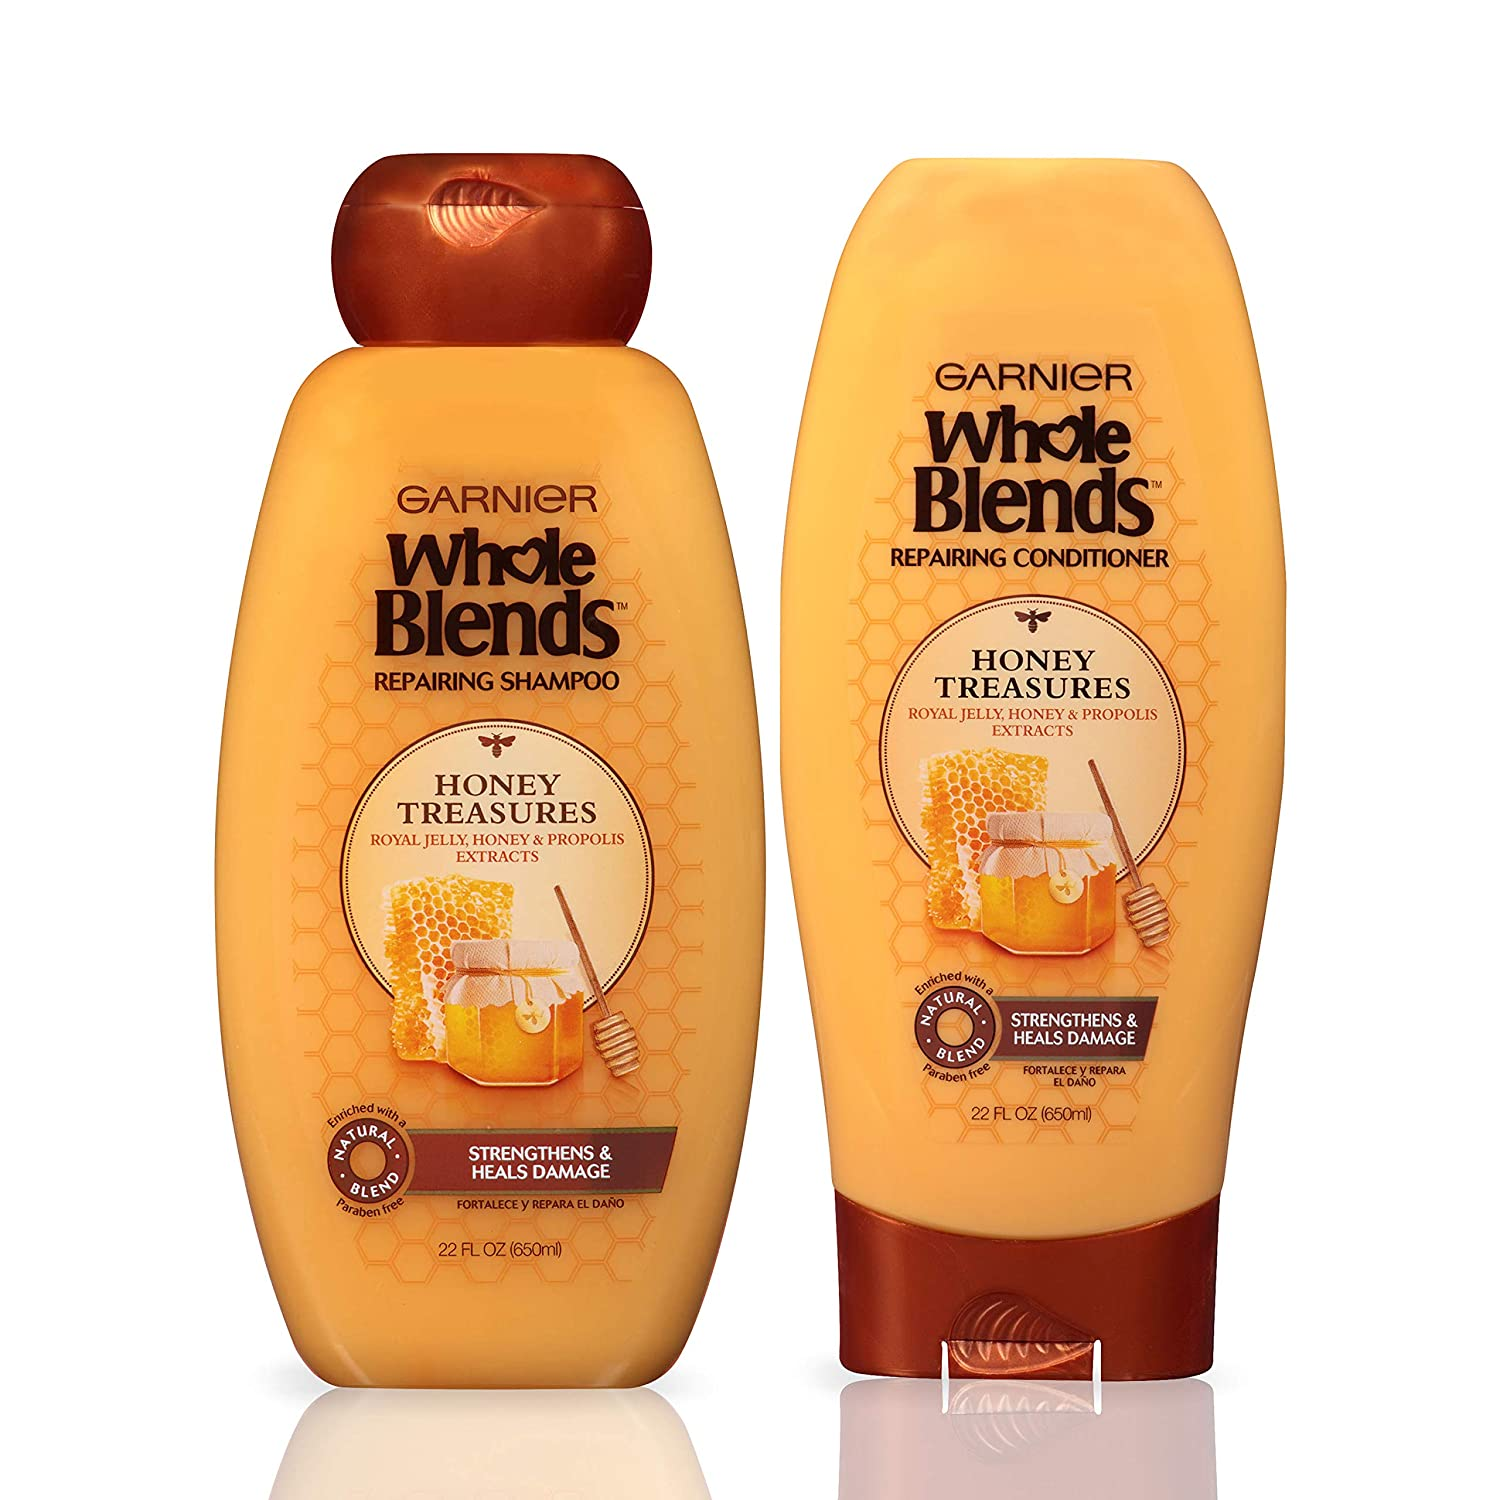 Garnier Hair Care Whole Blends Honey Treasures Repairing Shampoo and Conditioner, For Damaged Hair 44 Fl Oz